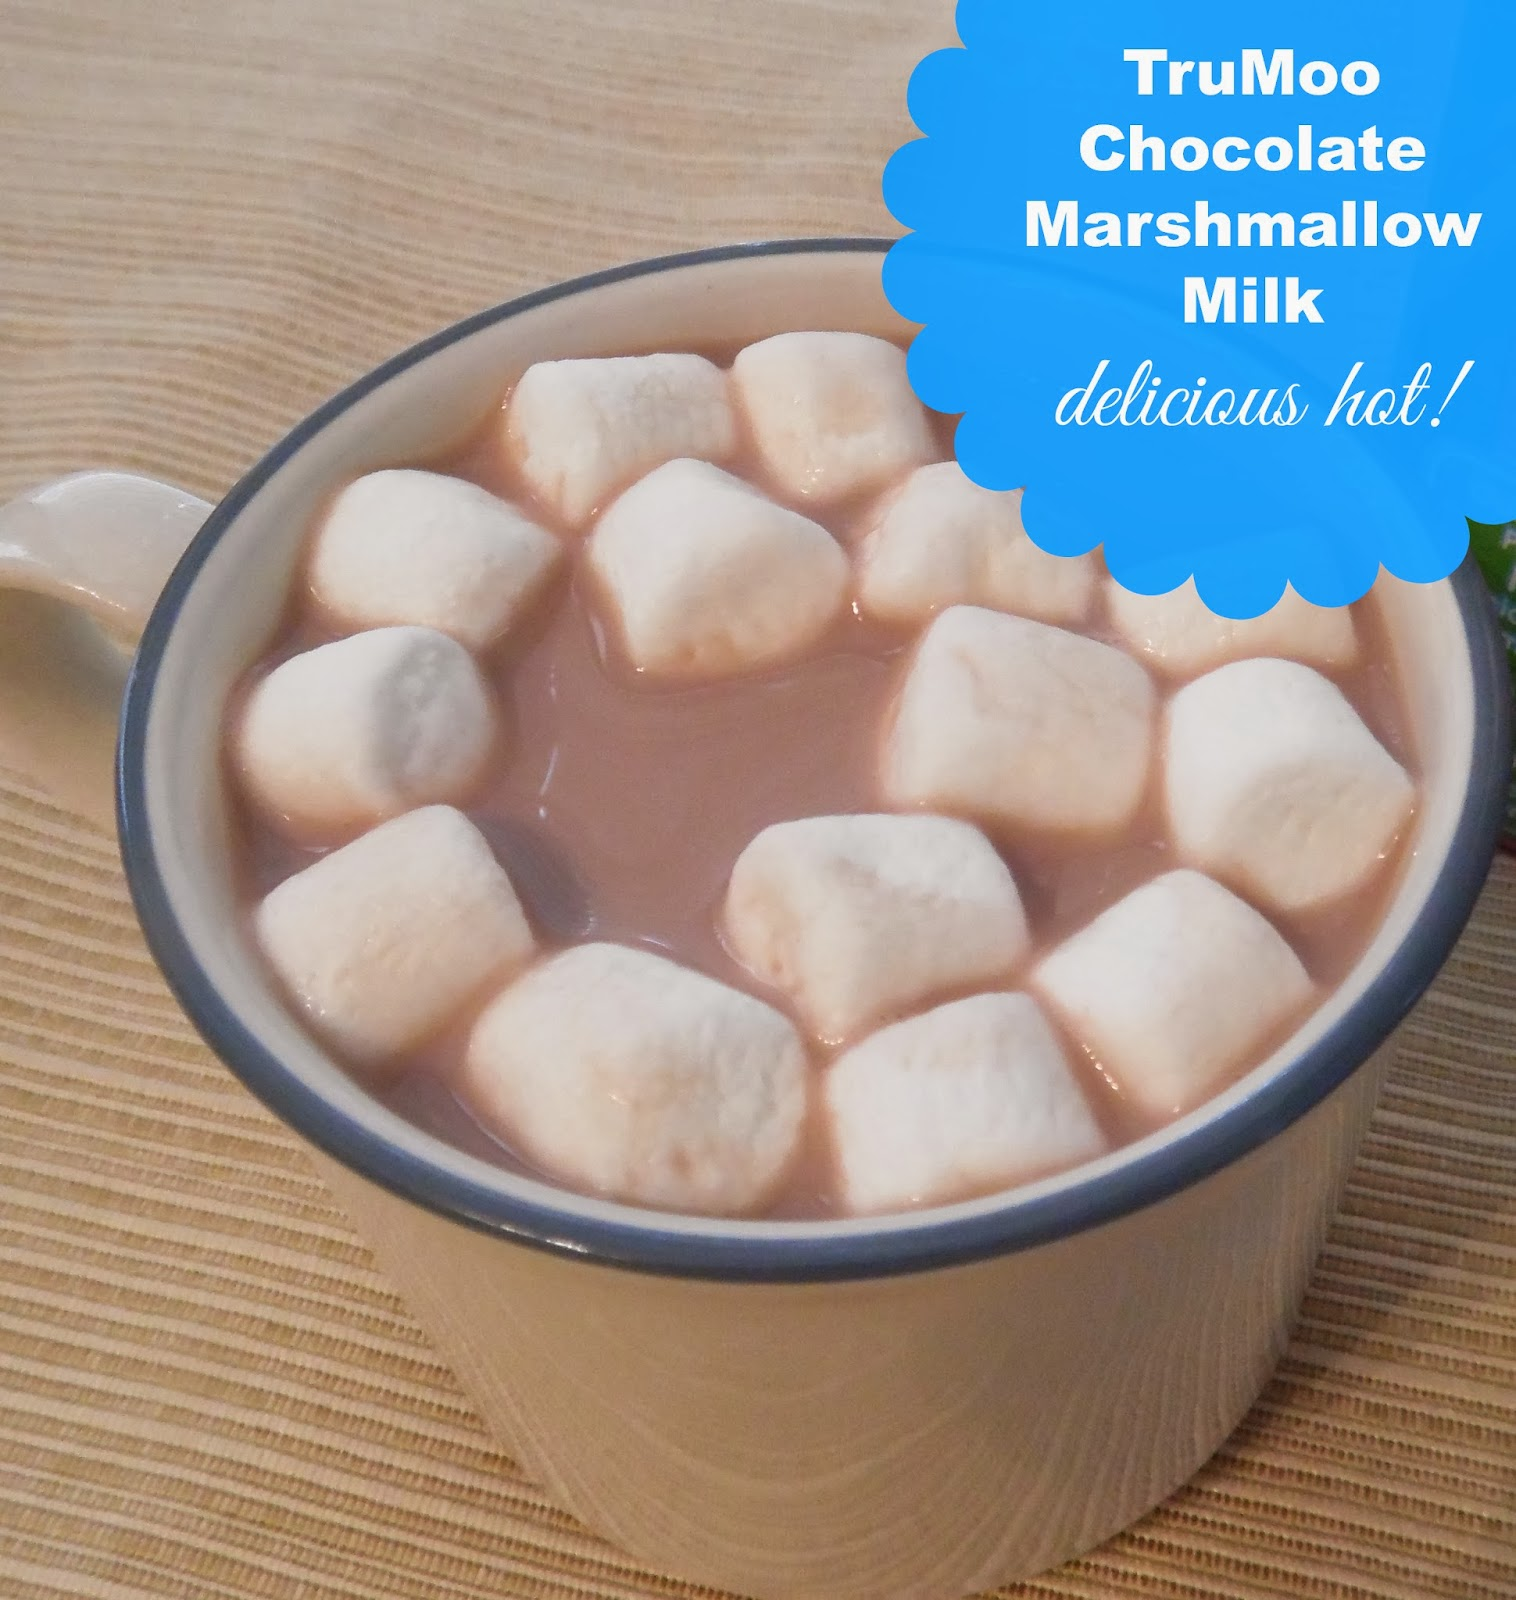 #TruMoo Introduces New Chocolate Marshmallow Milk -- Try it Hot or Cold! Plus a $500 Giveaway